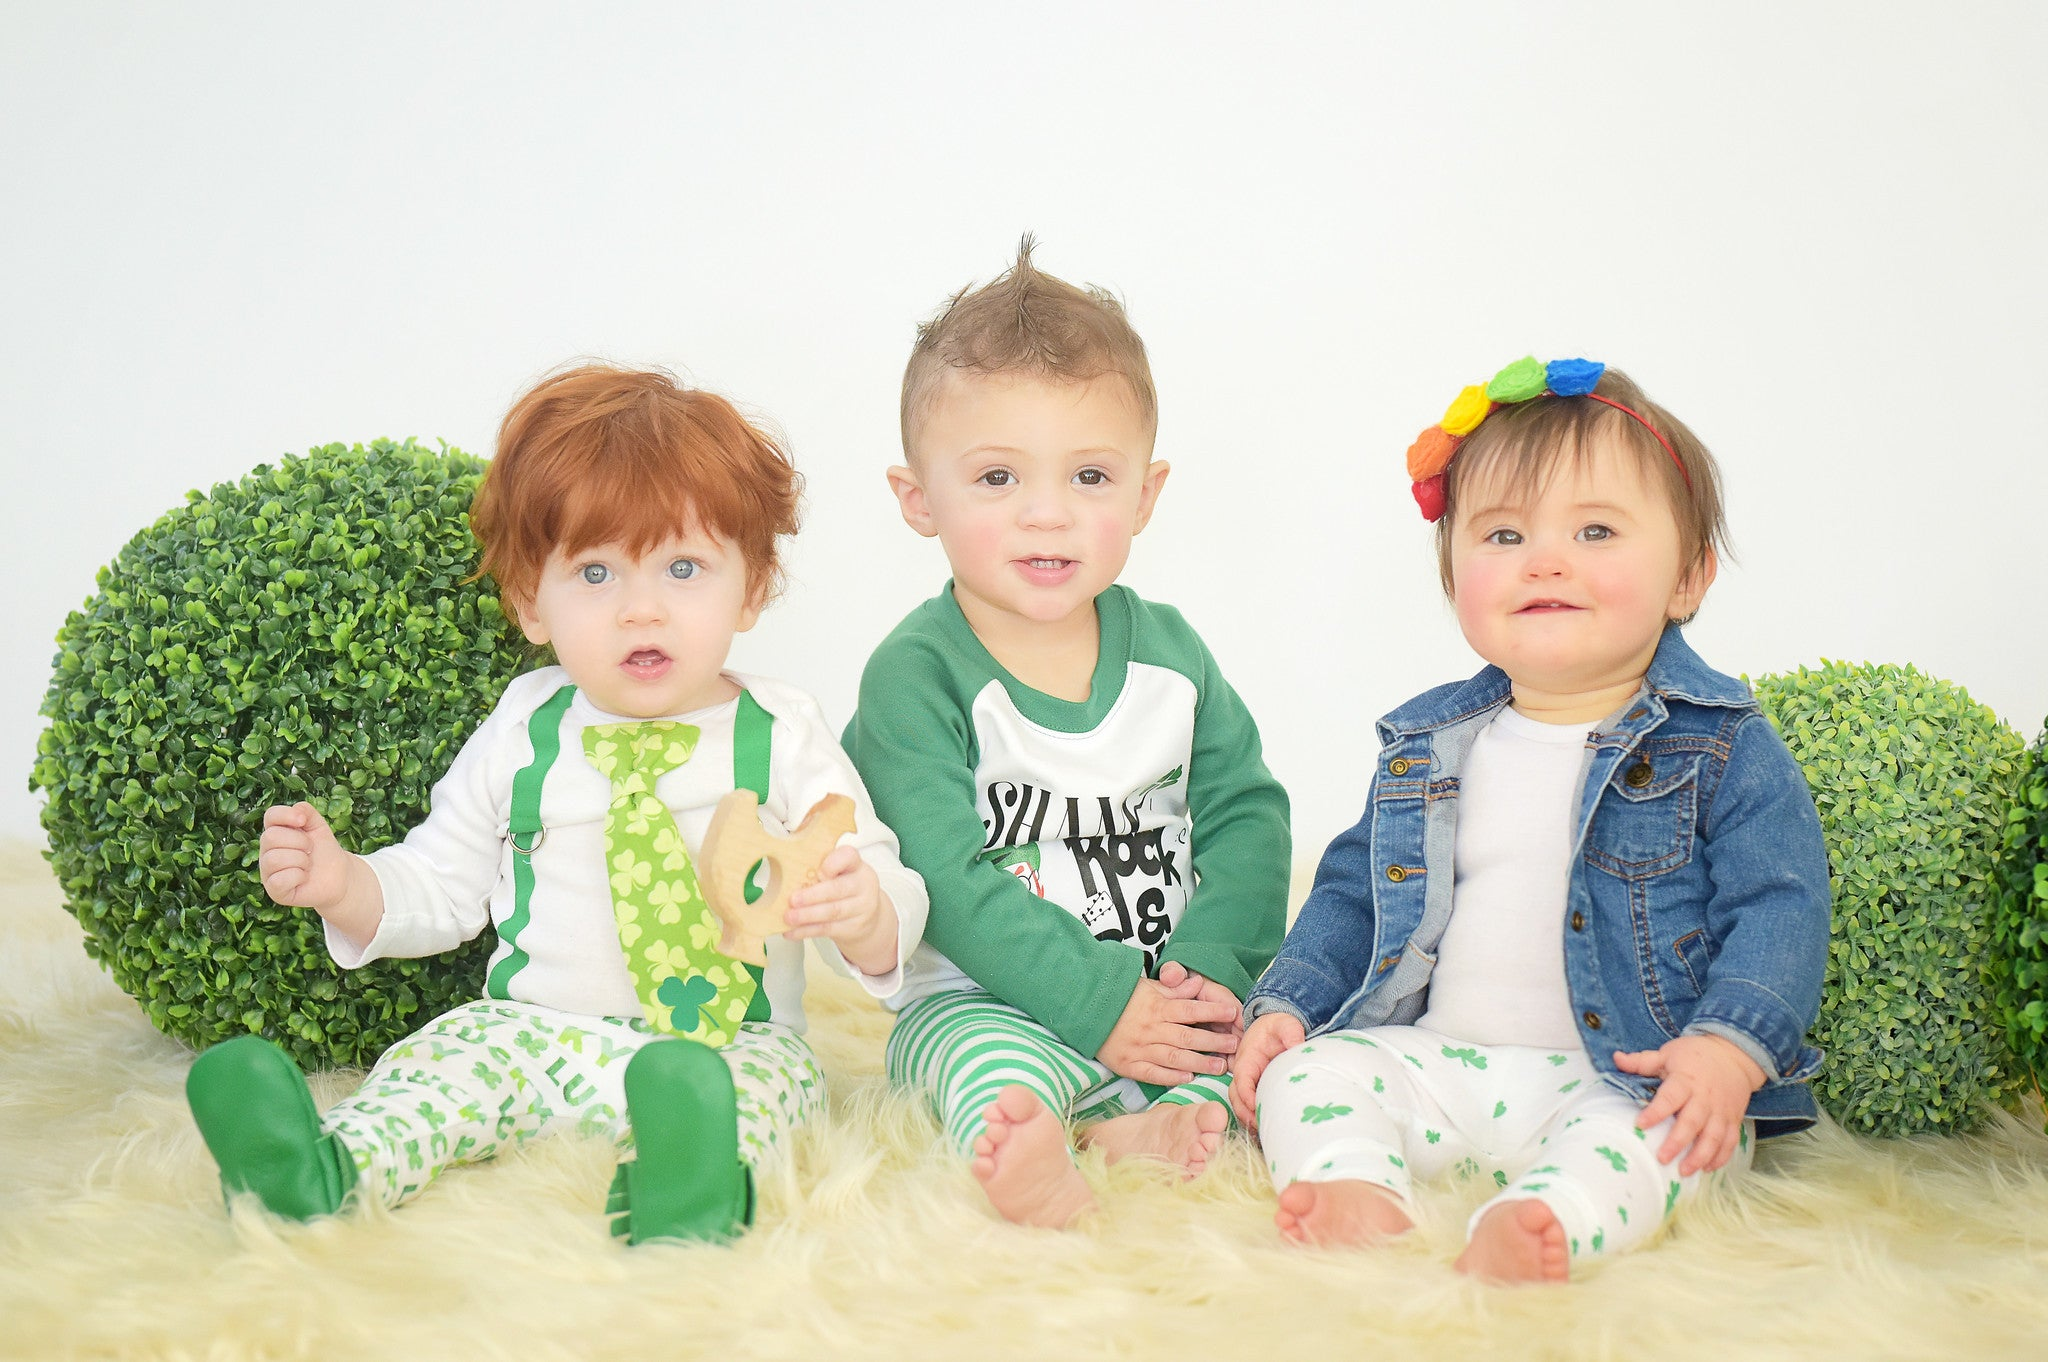 St Patricks Day Photoshoot Ideas For Boys